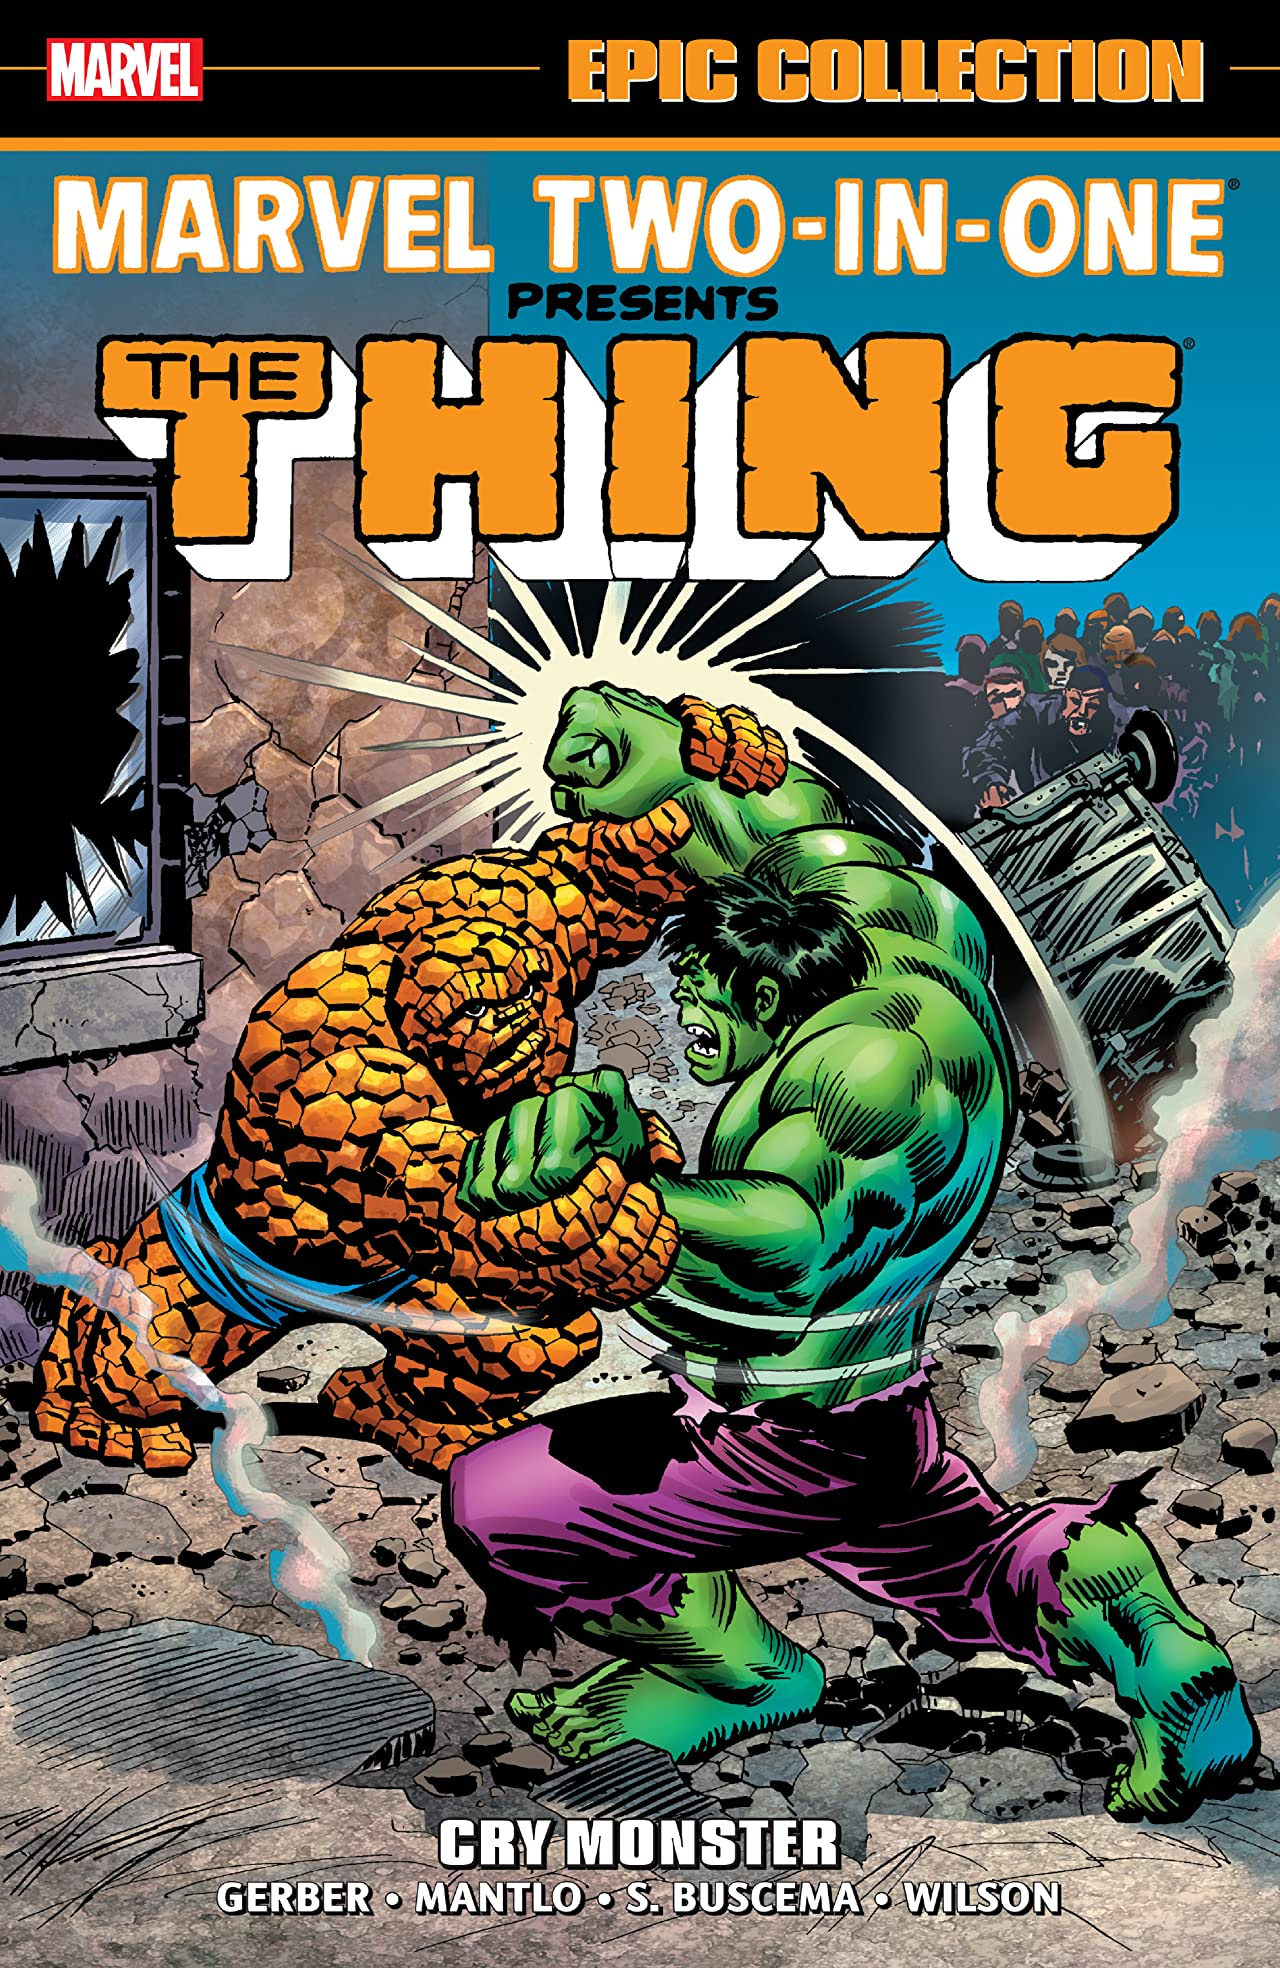 Marvel Two-In-One Epic Collection: Cry Monster (Trade Paperback)